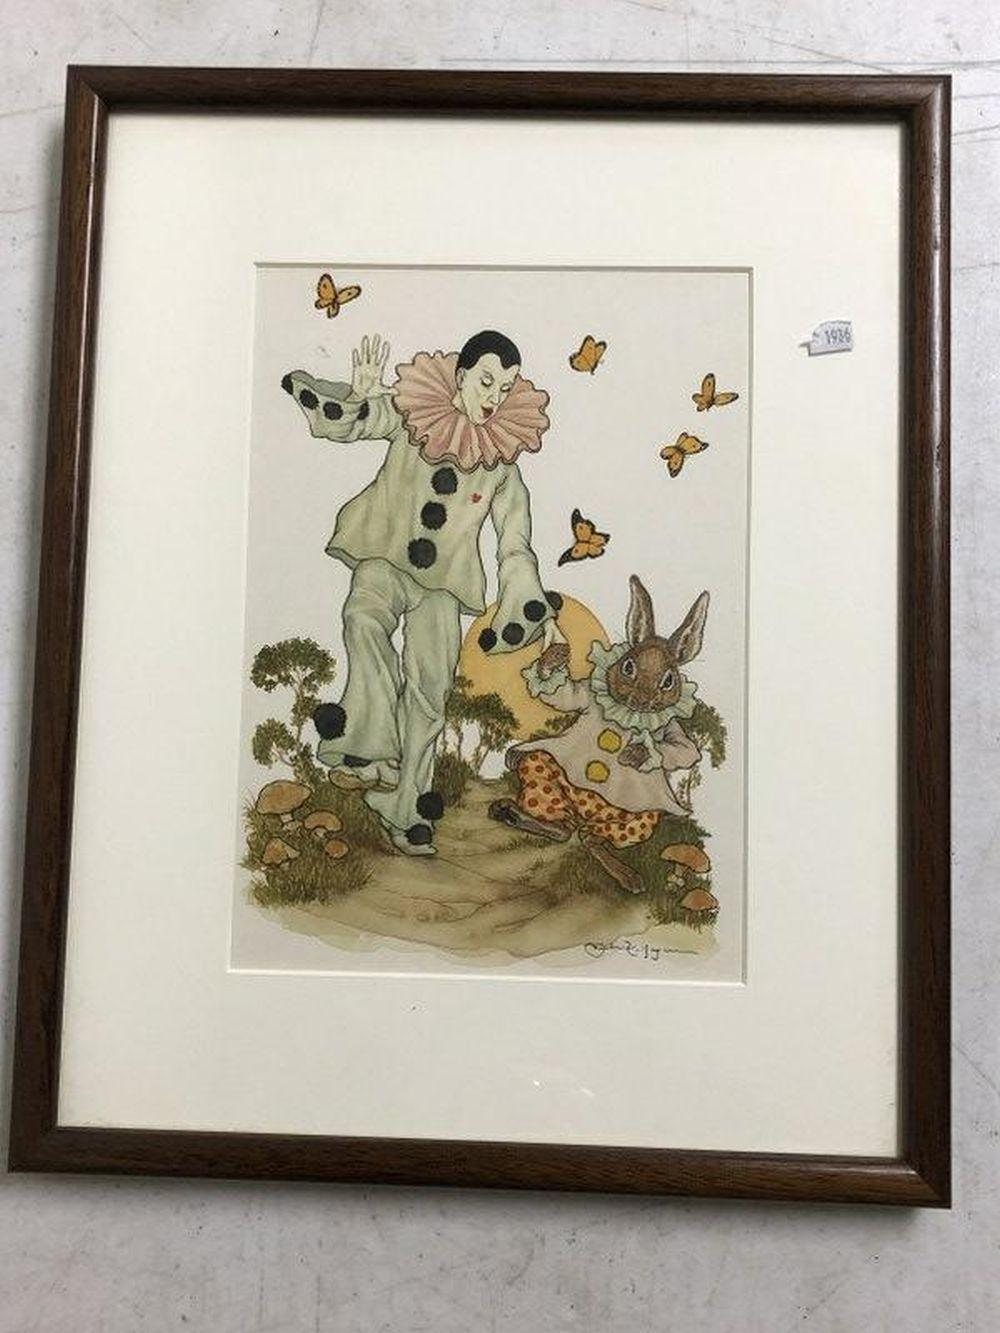 W/C HARLEQUIN WITH RABBIT ILLUSTRATION, SIGNED